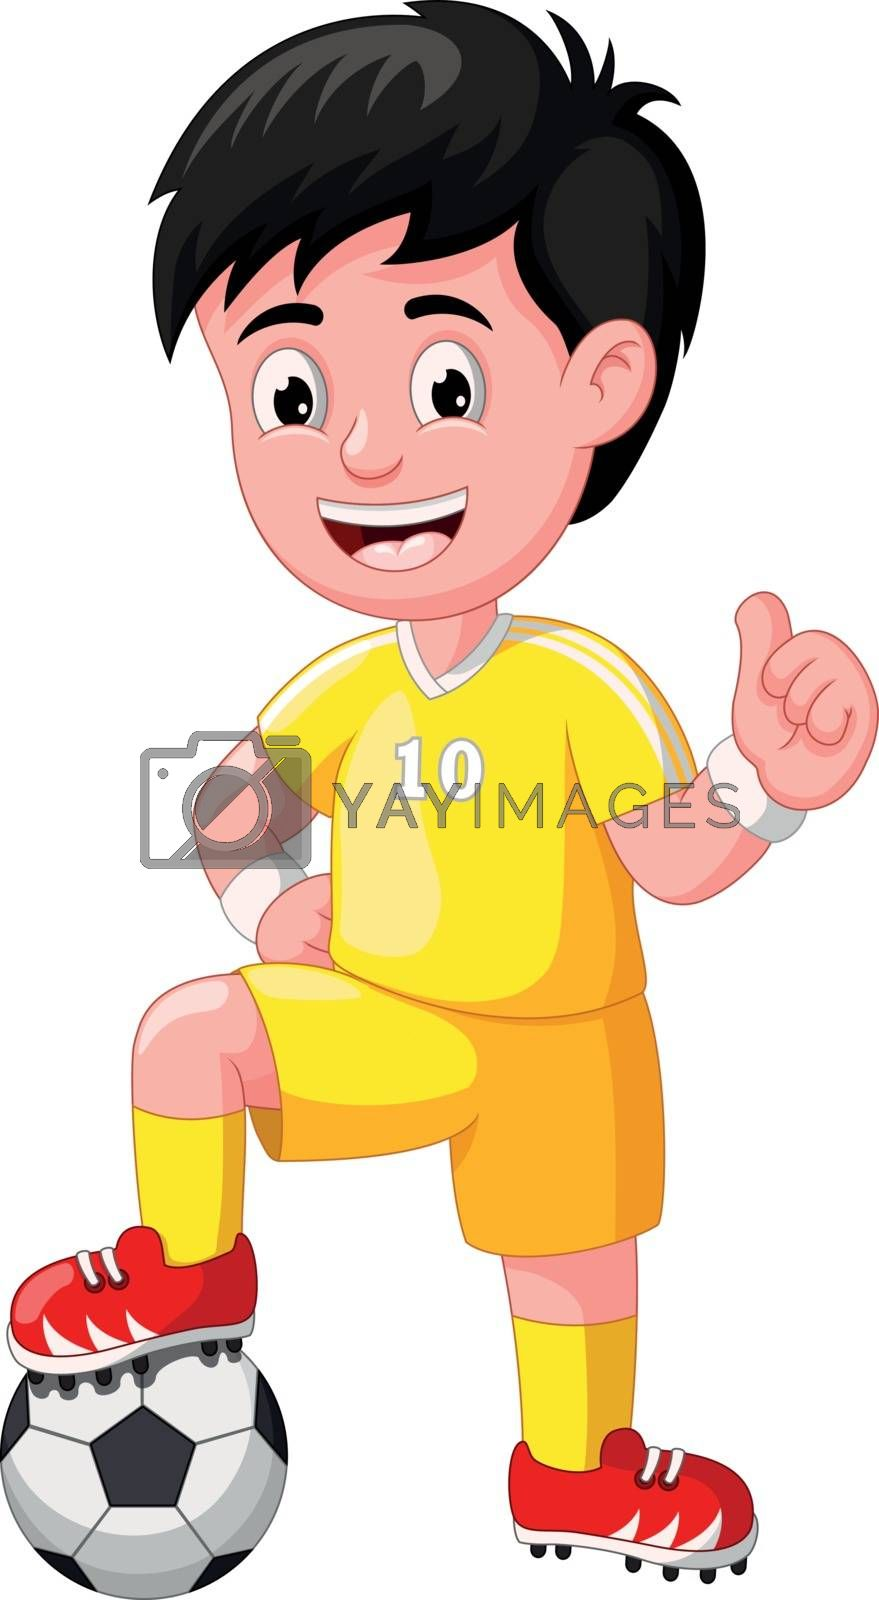 Cool Football Soccer Player Boy In Yellow Uniform Cartoon for your design